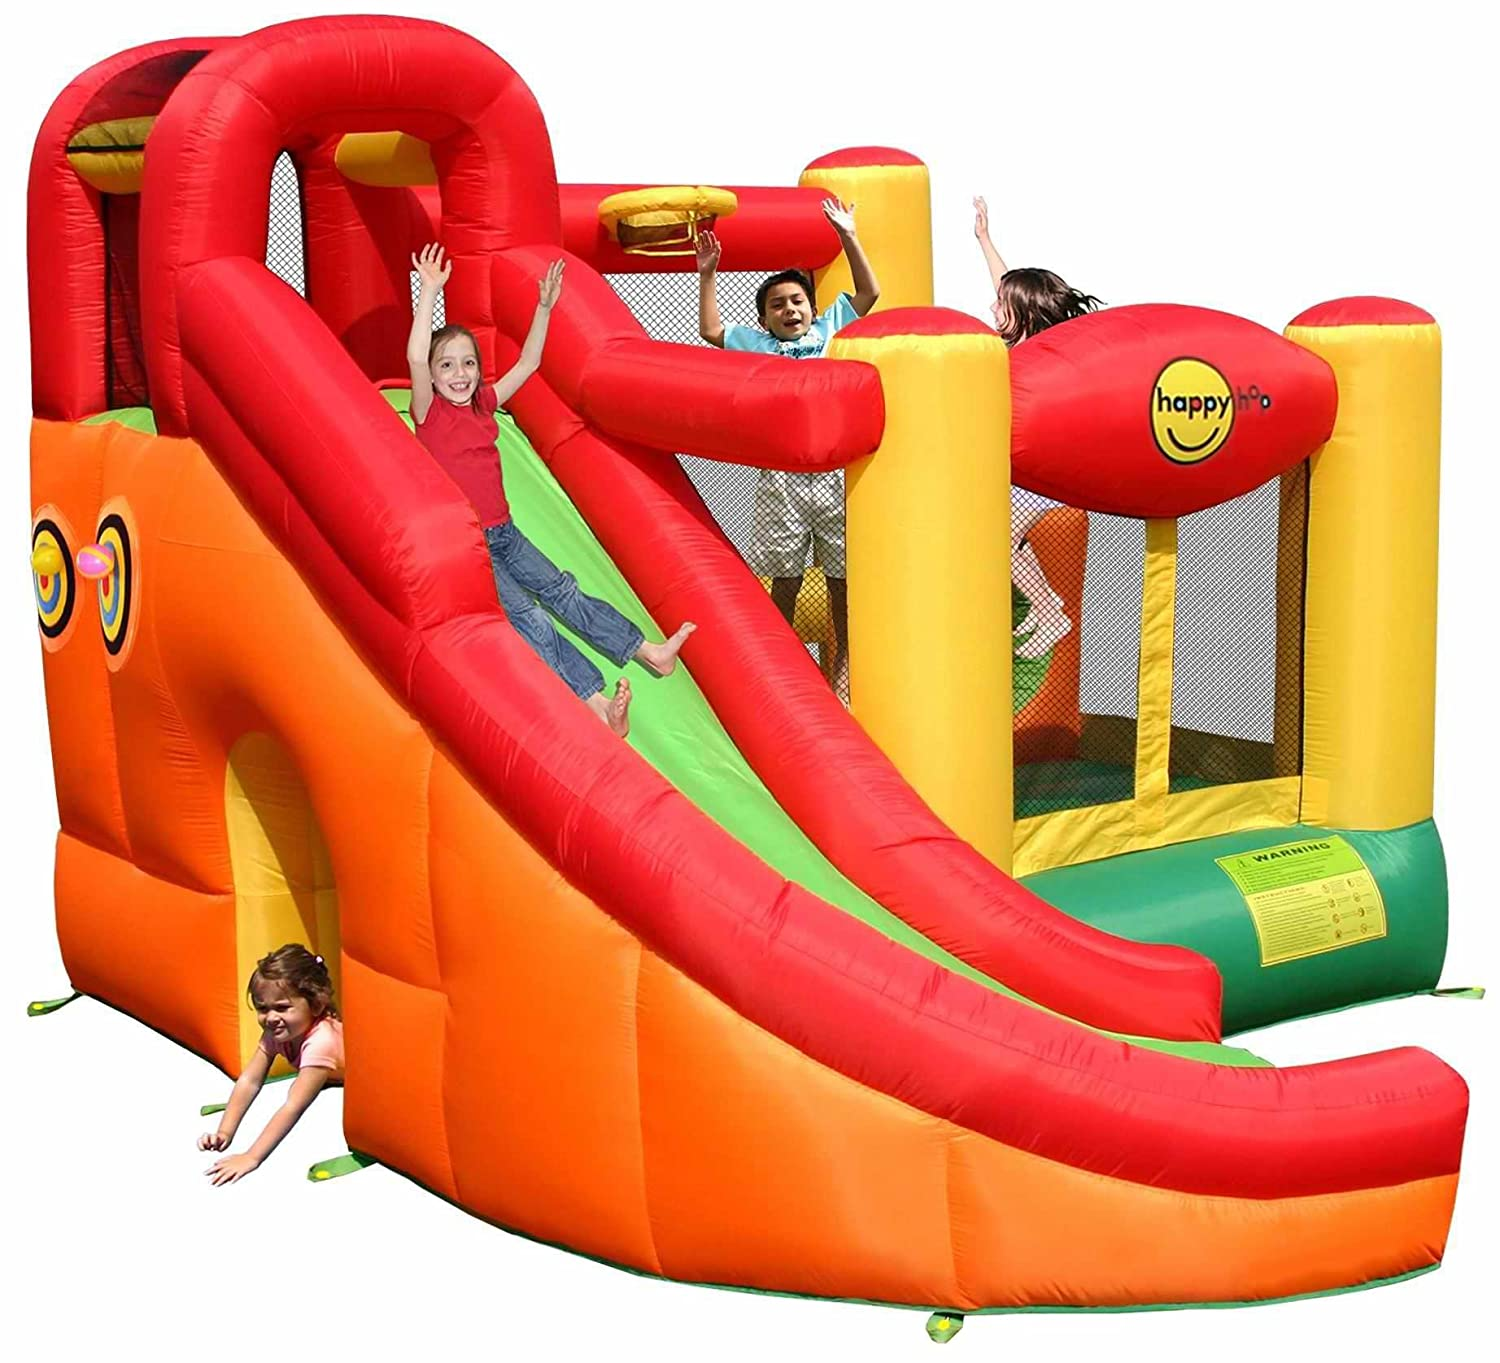 Castillo inflable 10 en 1 - 9106 Happy Hop: Amazon.es: Juguetes y ...